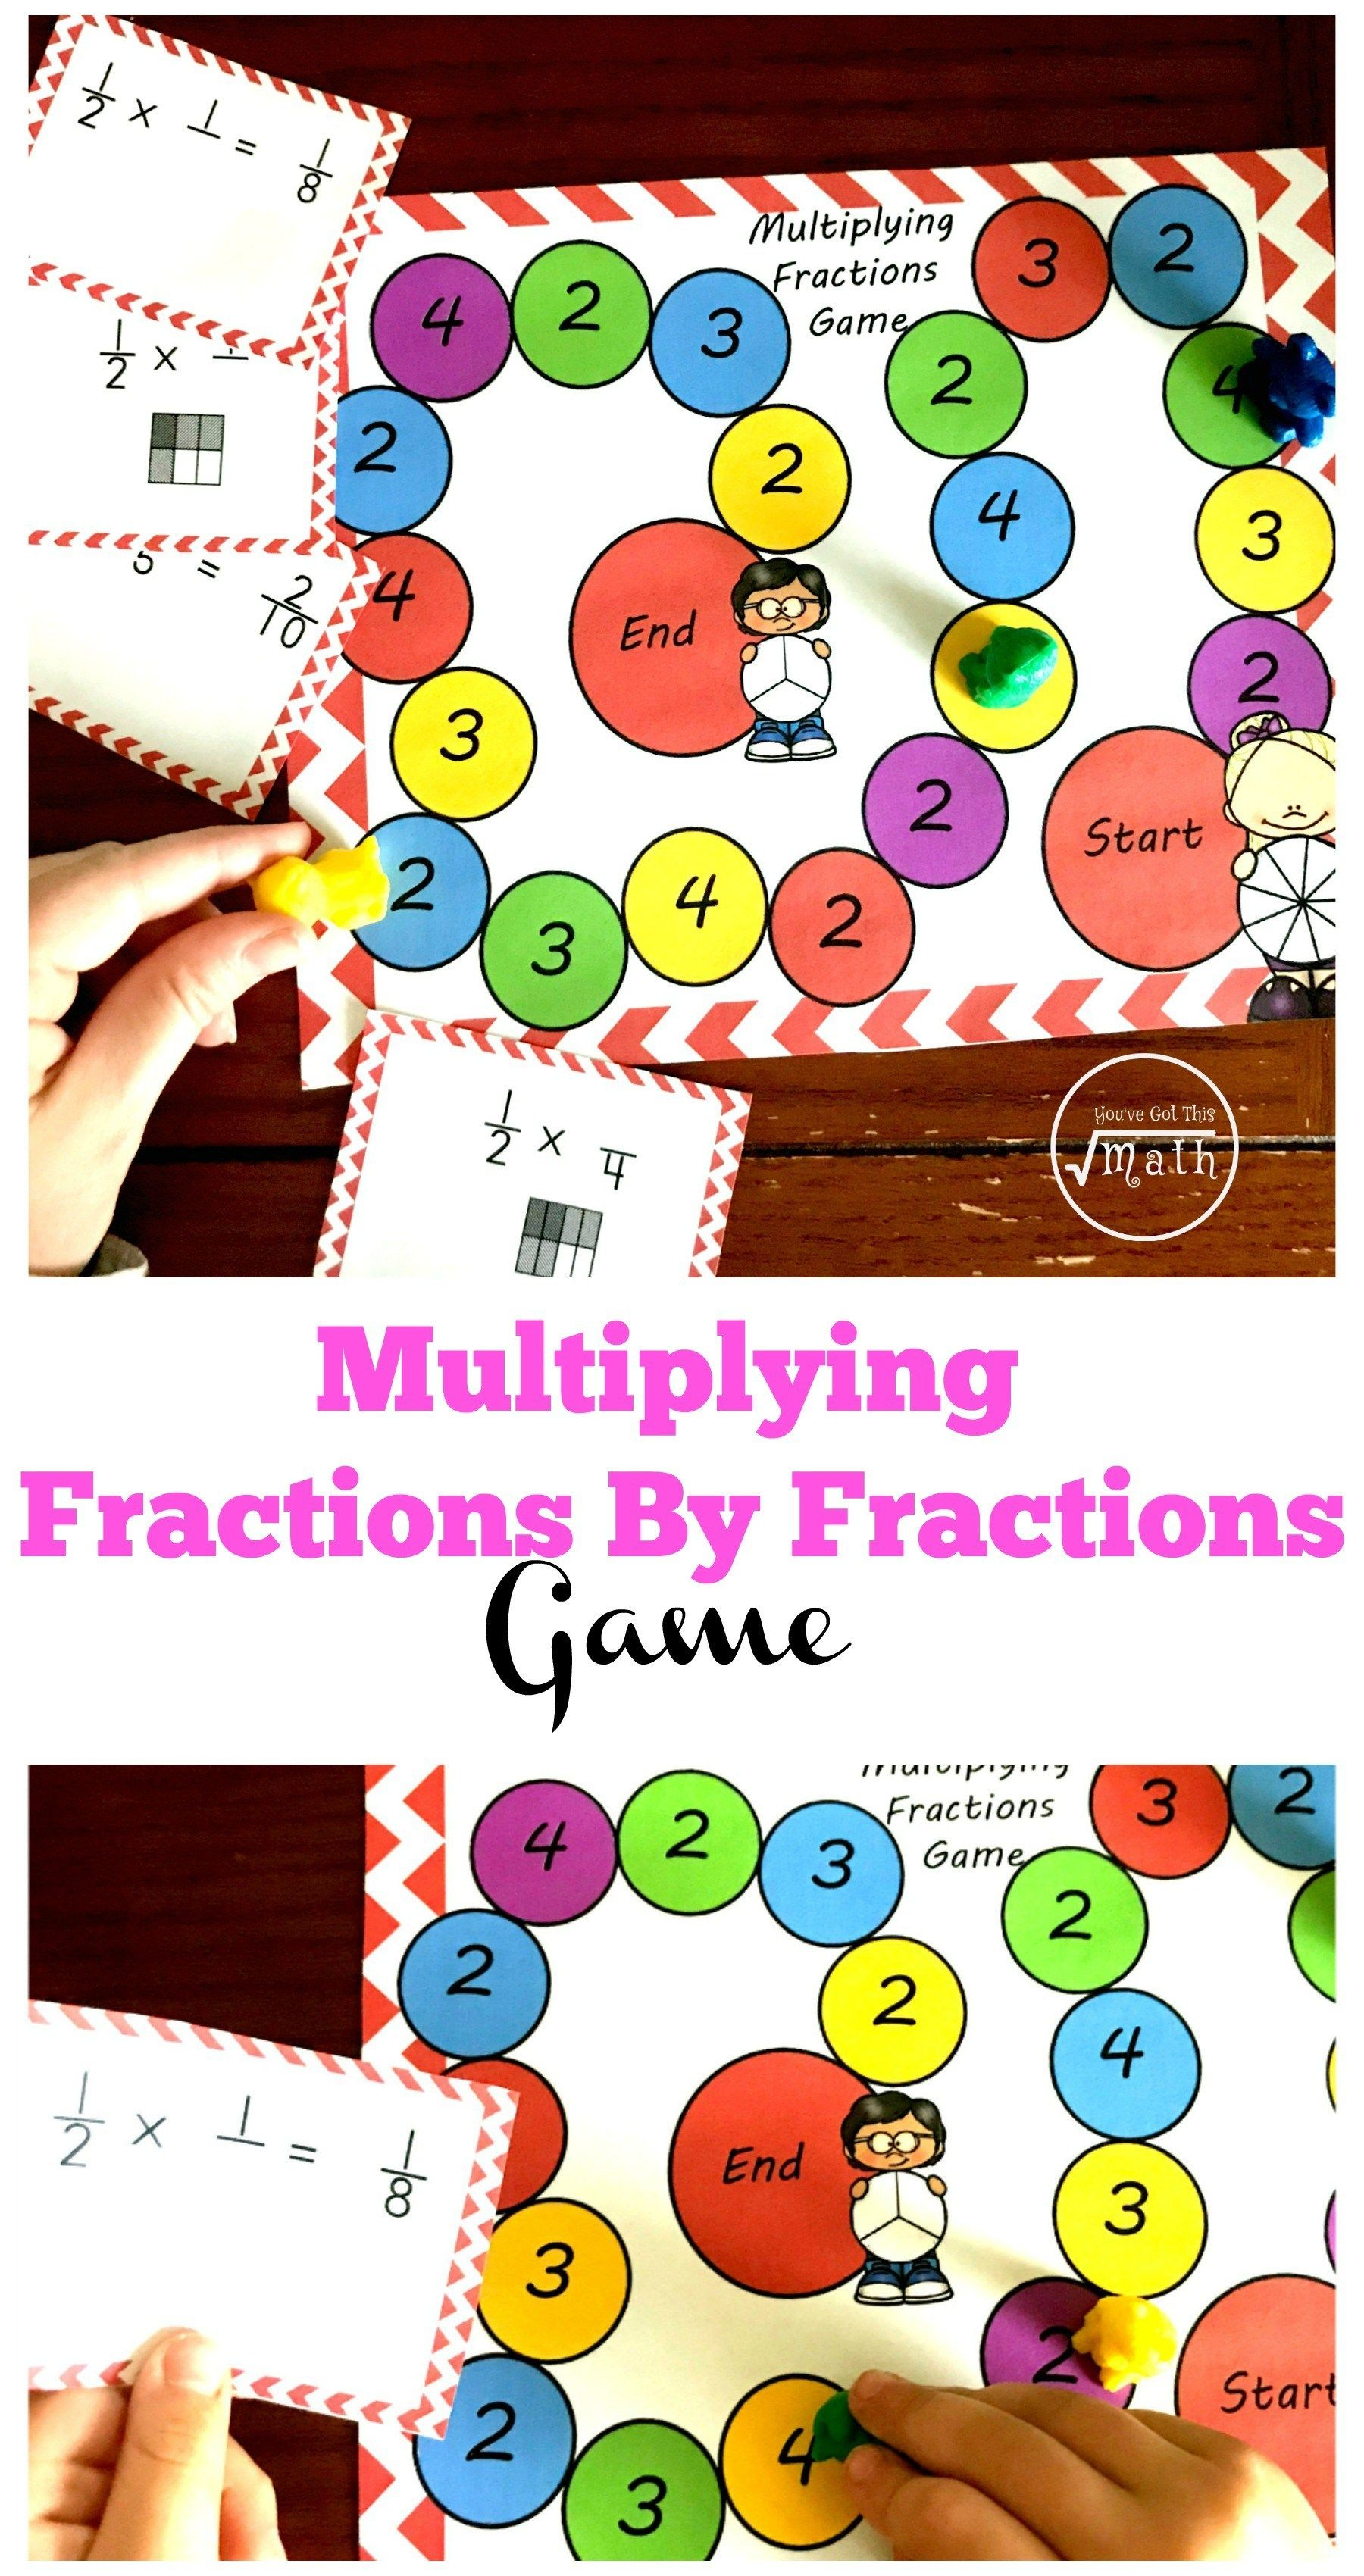 photo relating to Printable Fraction Game named Absolutely free printable portion video game for multiplying fractions Artofit